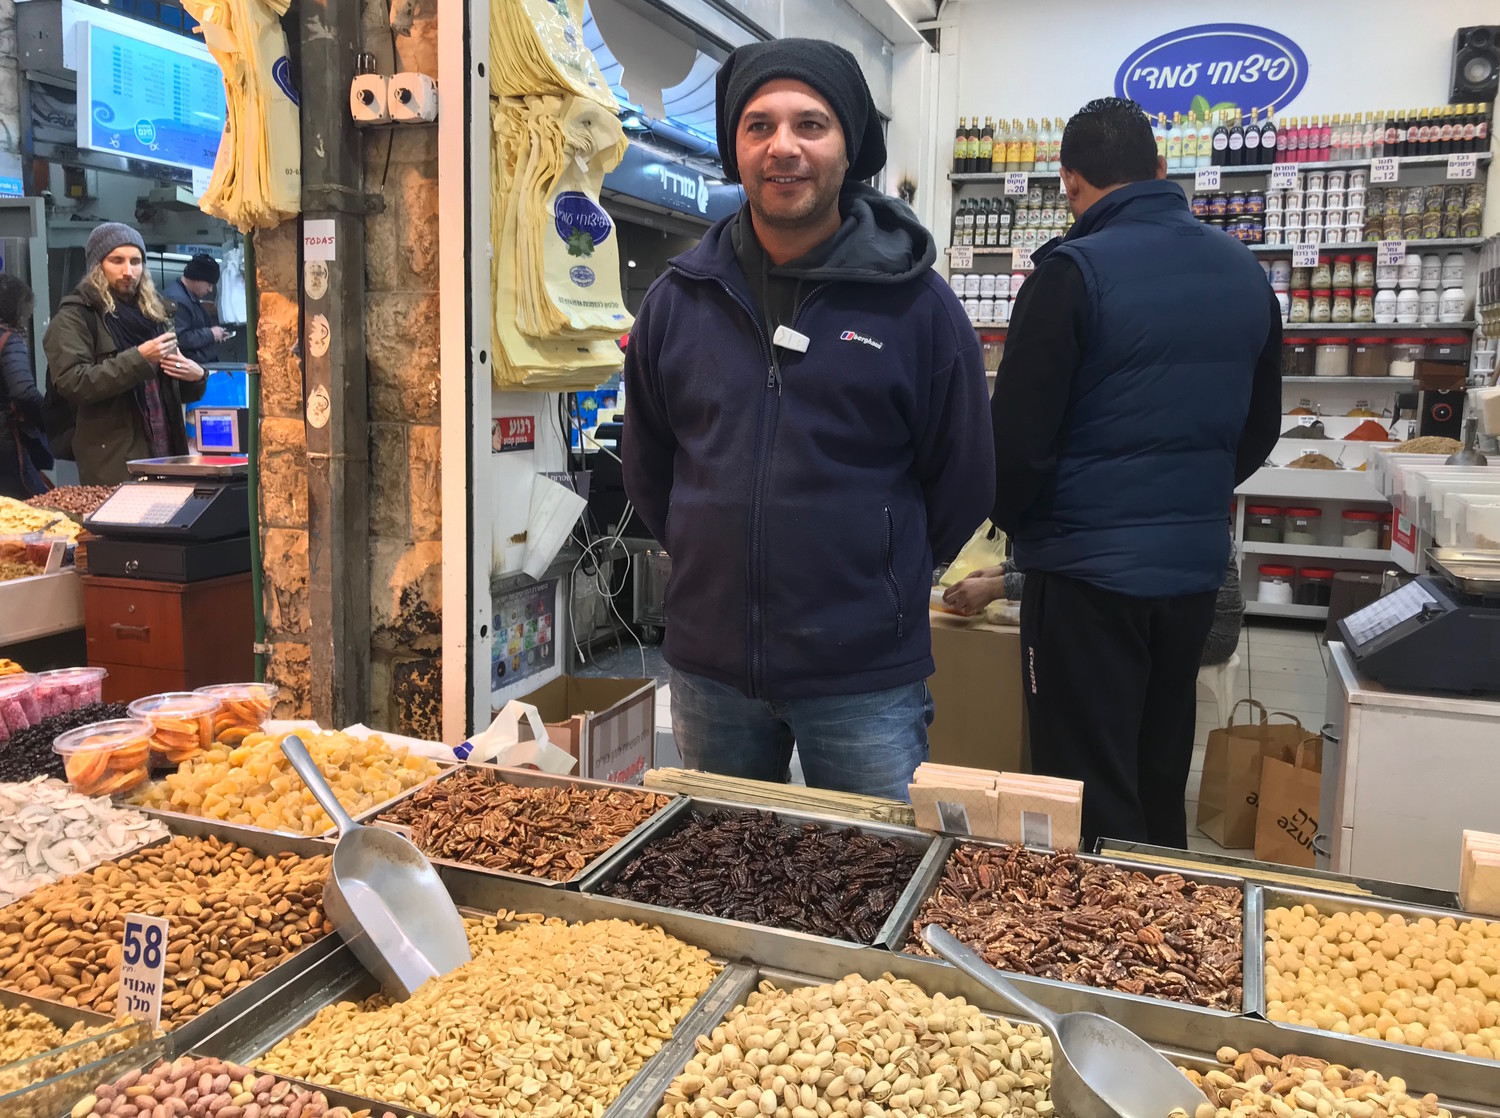 Bassam Hoshiah selling nuts at the Mahane Yehuda market in Jerusalem, Dec. 6, 2017.